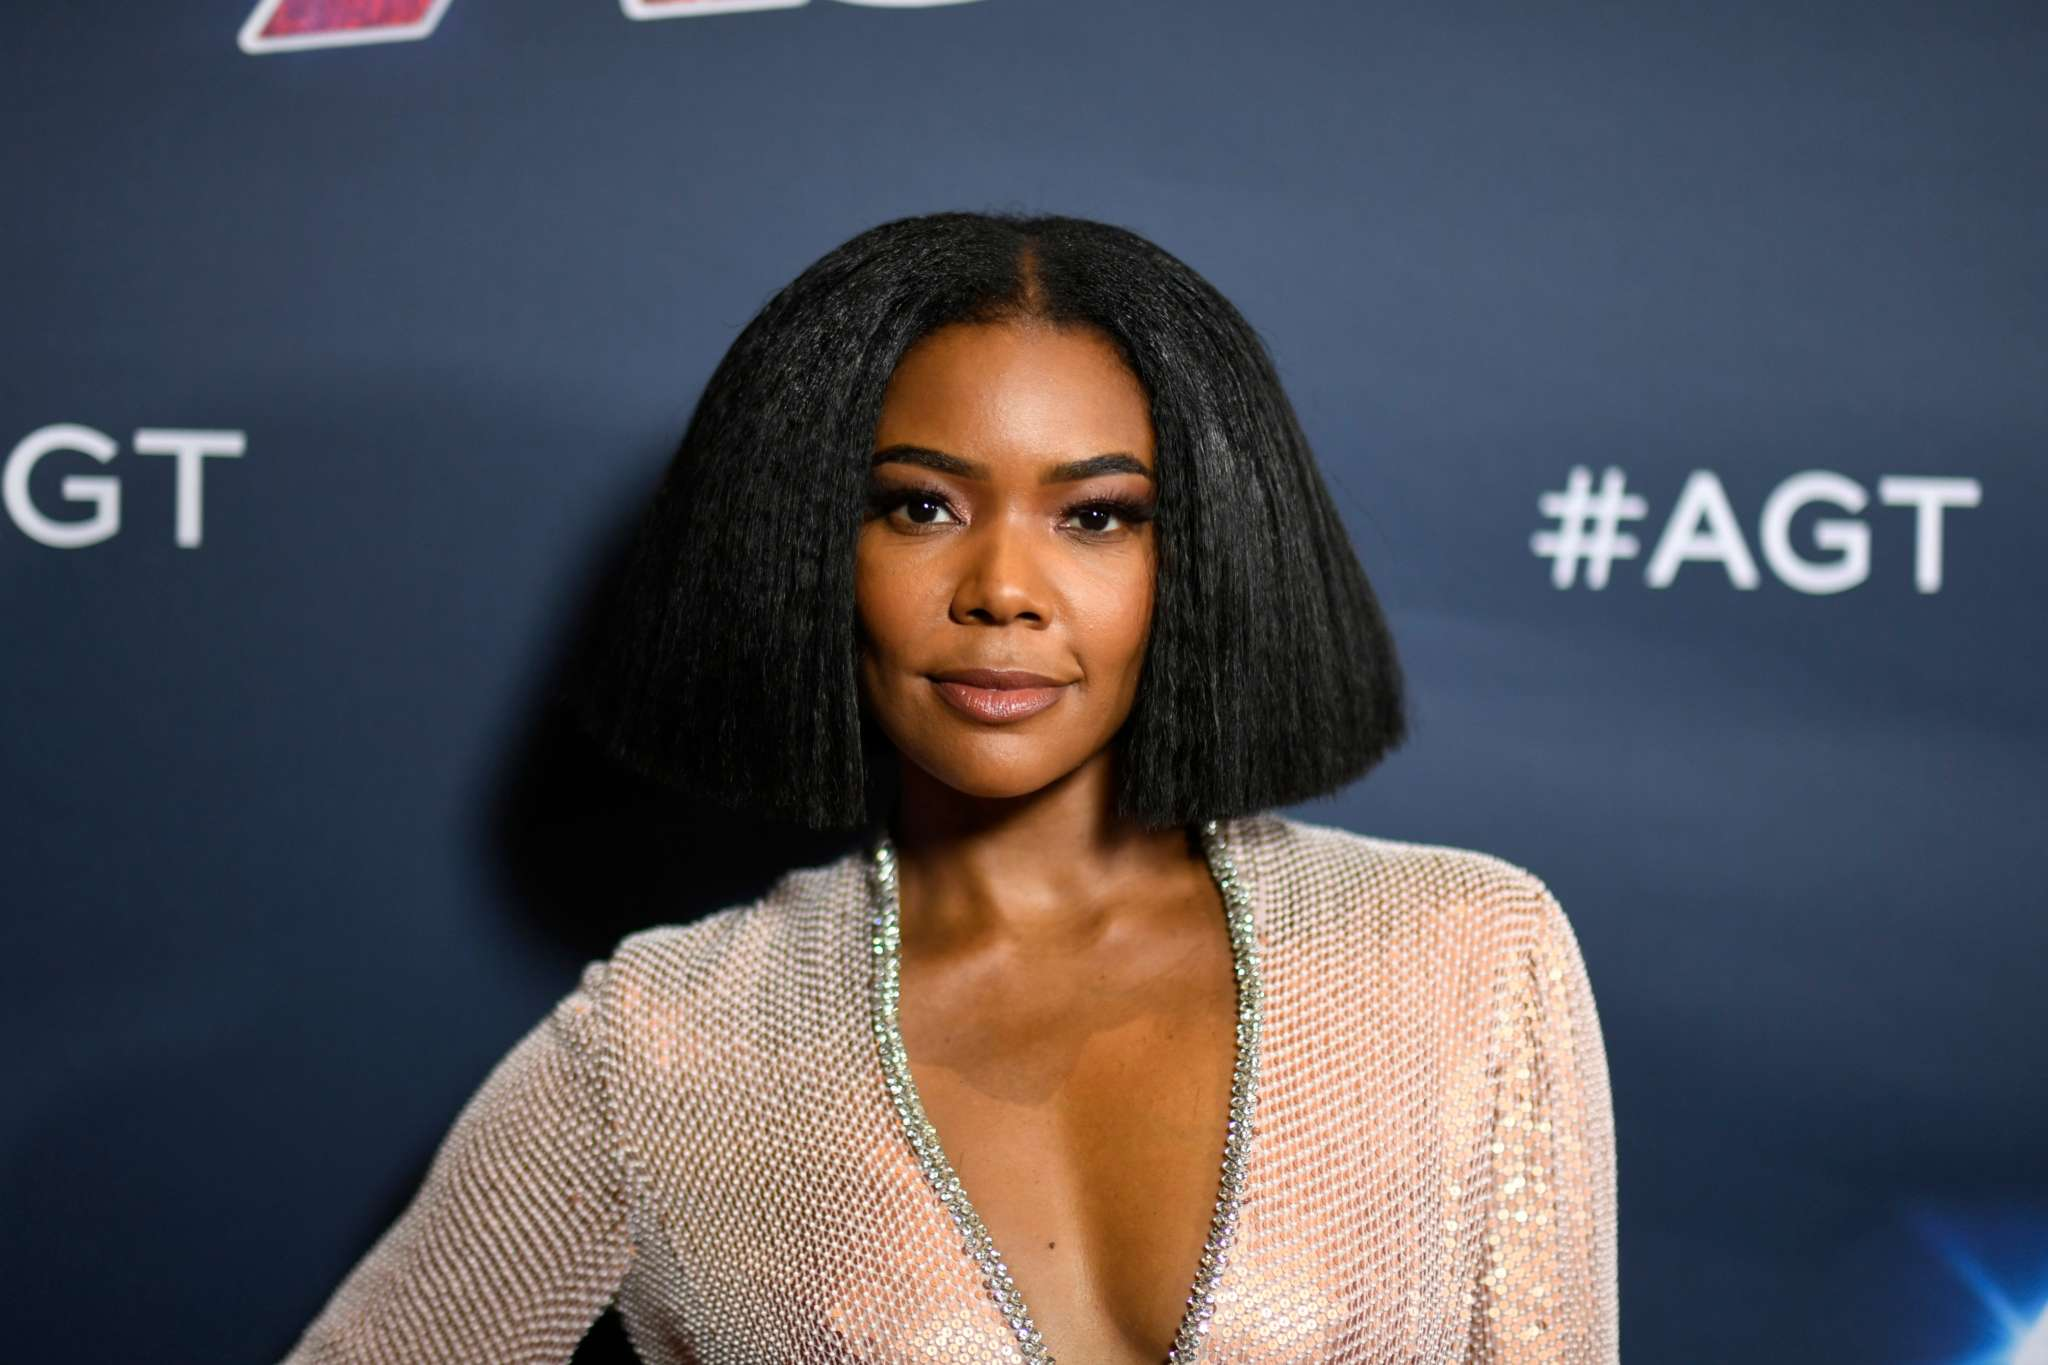 """gabrielle-union-looks-ravishing-in-this-miu-miu-outfit-check-out-the-photos-and-clip"""